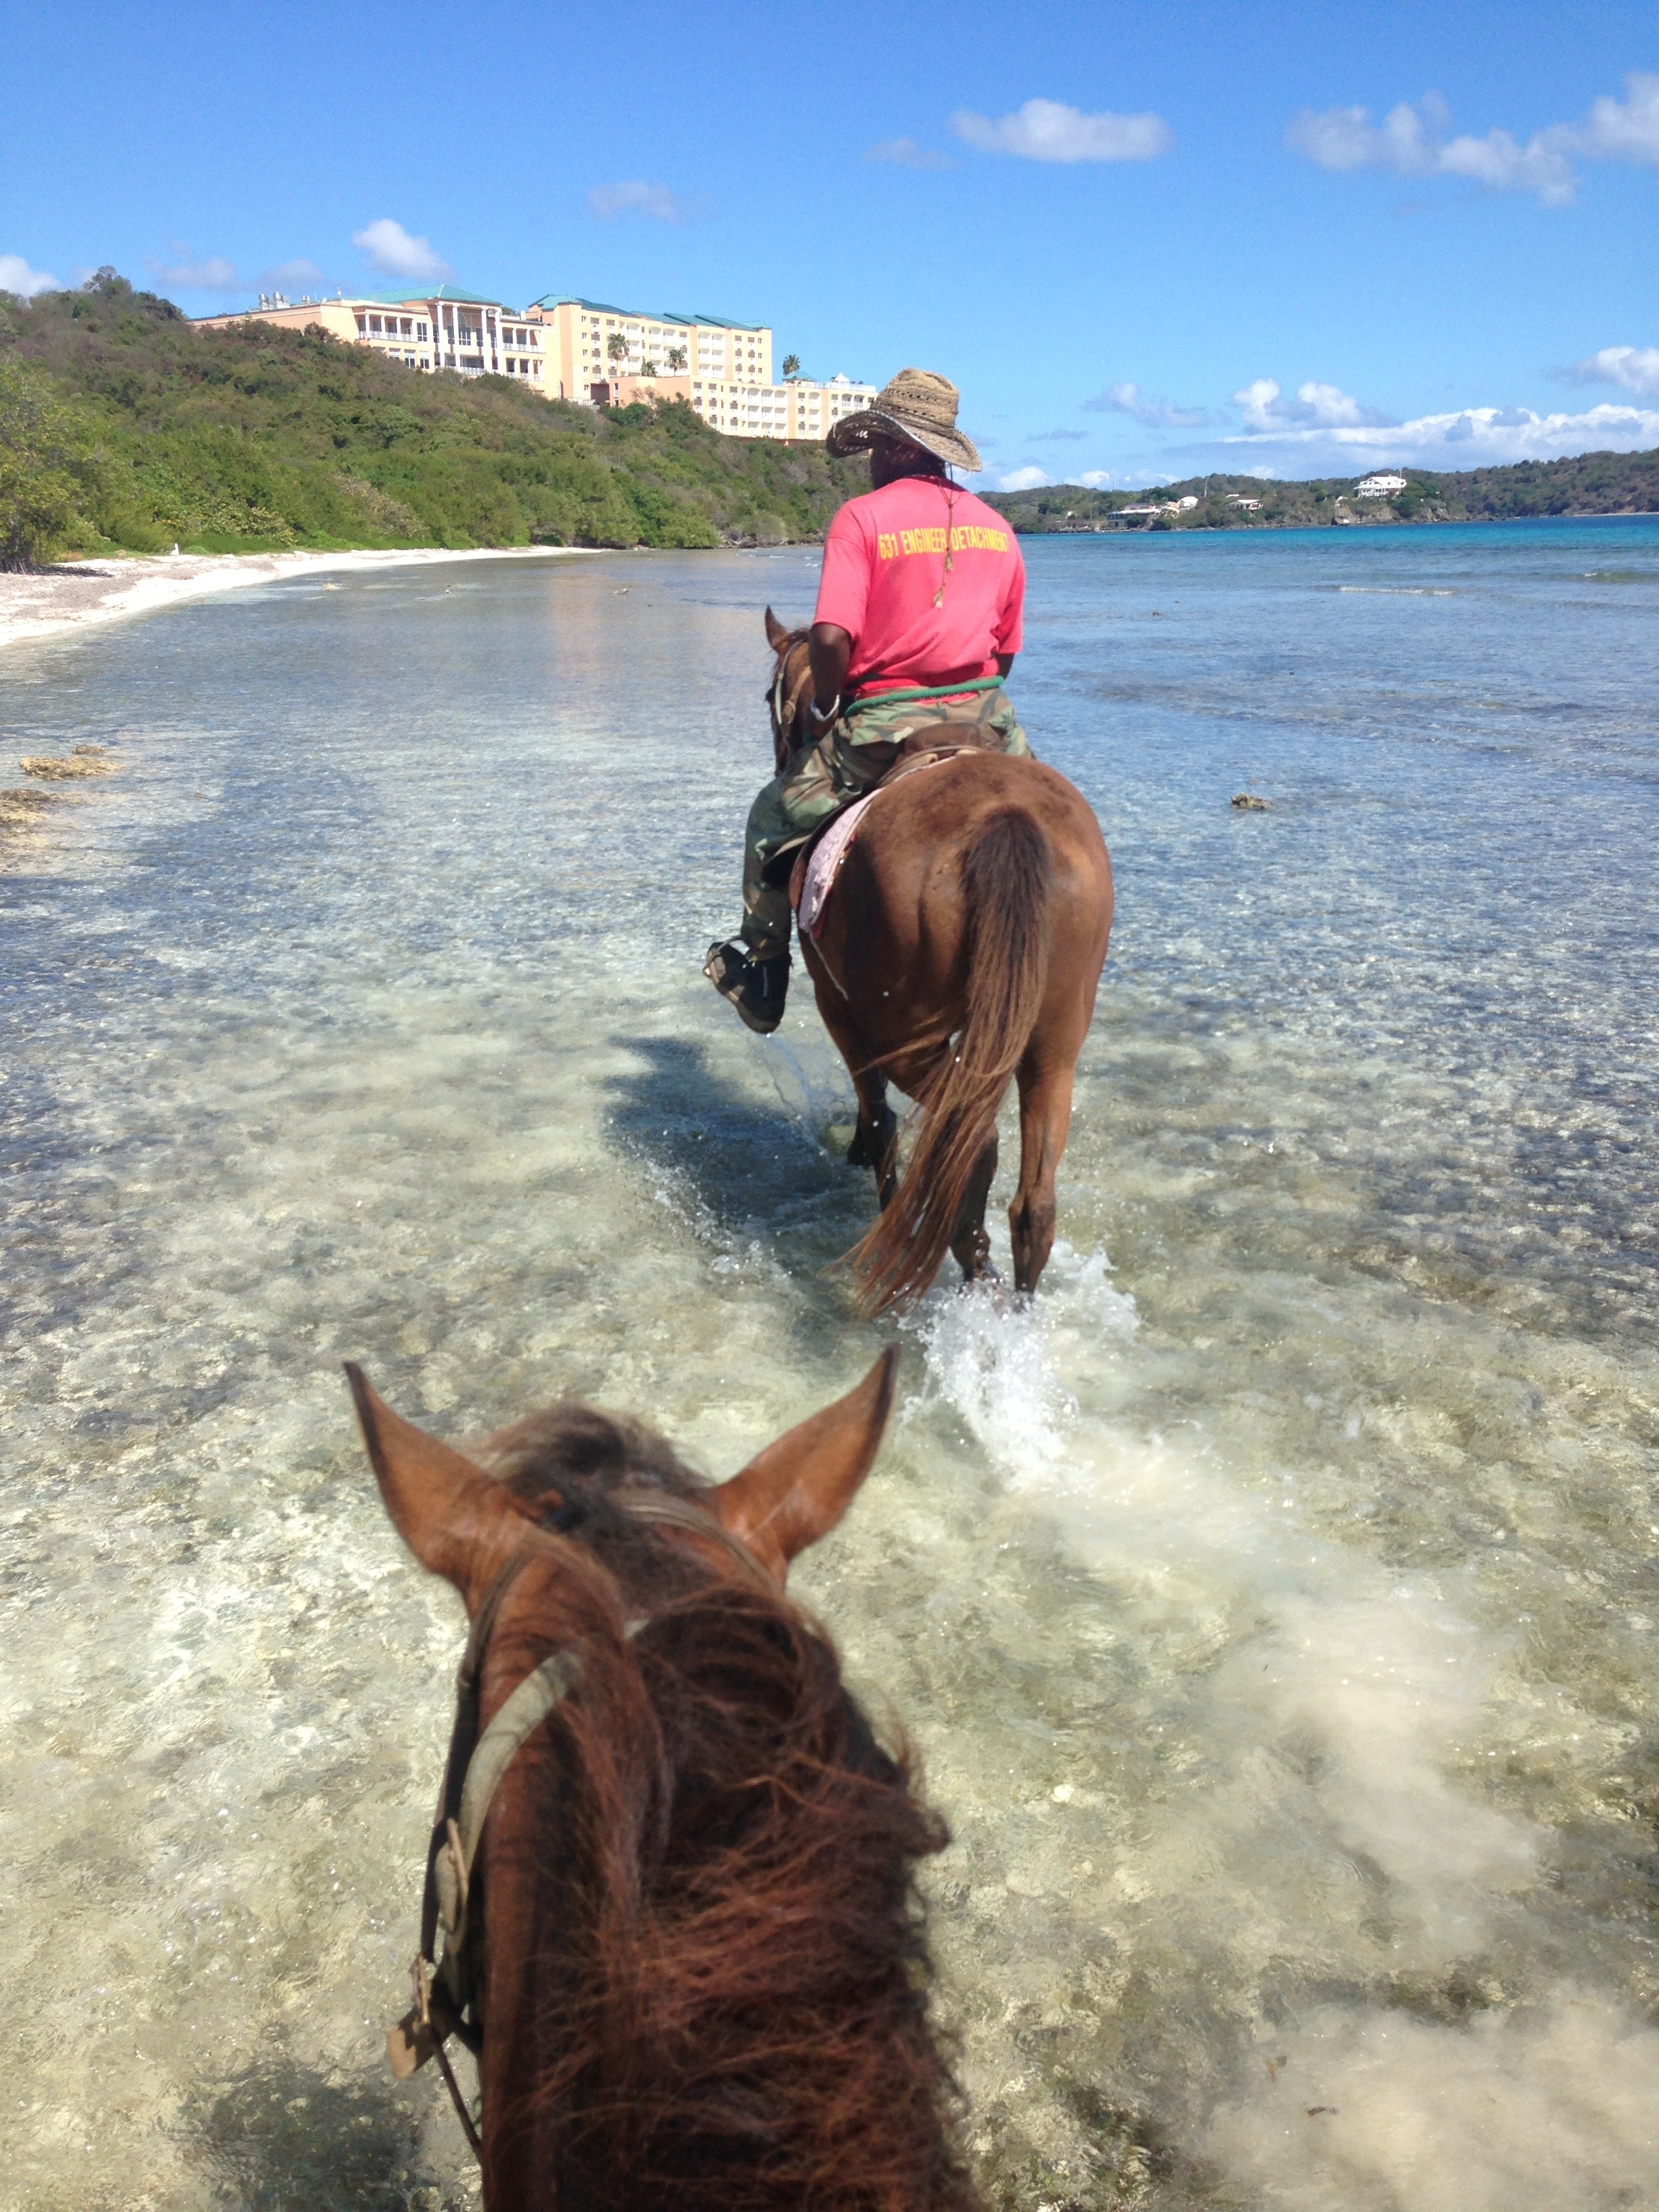 Horseback riding on the beach in St. Thomas, US Virgin Islands | Fairly Southern